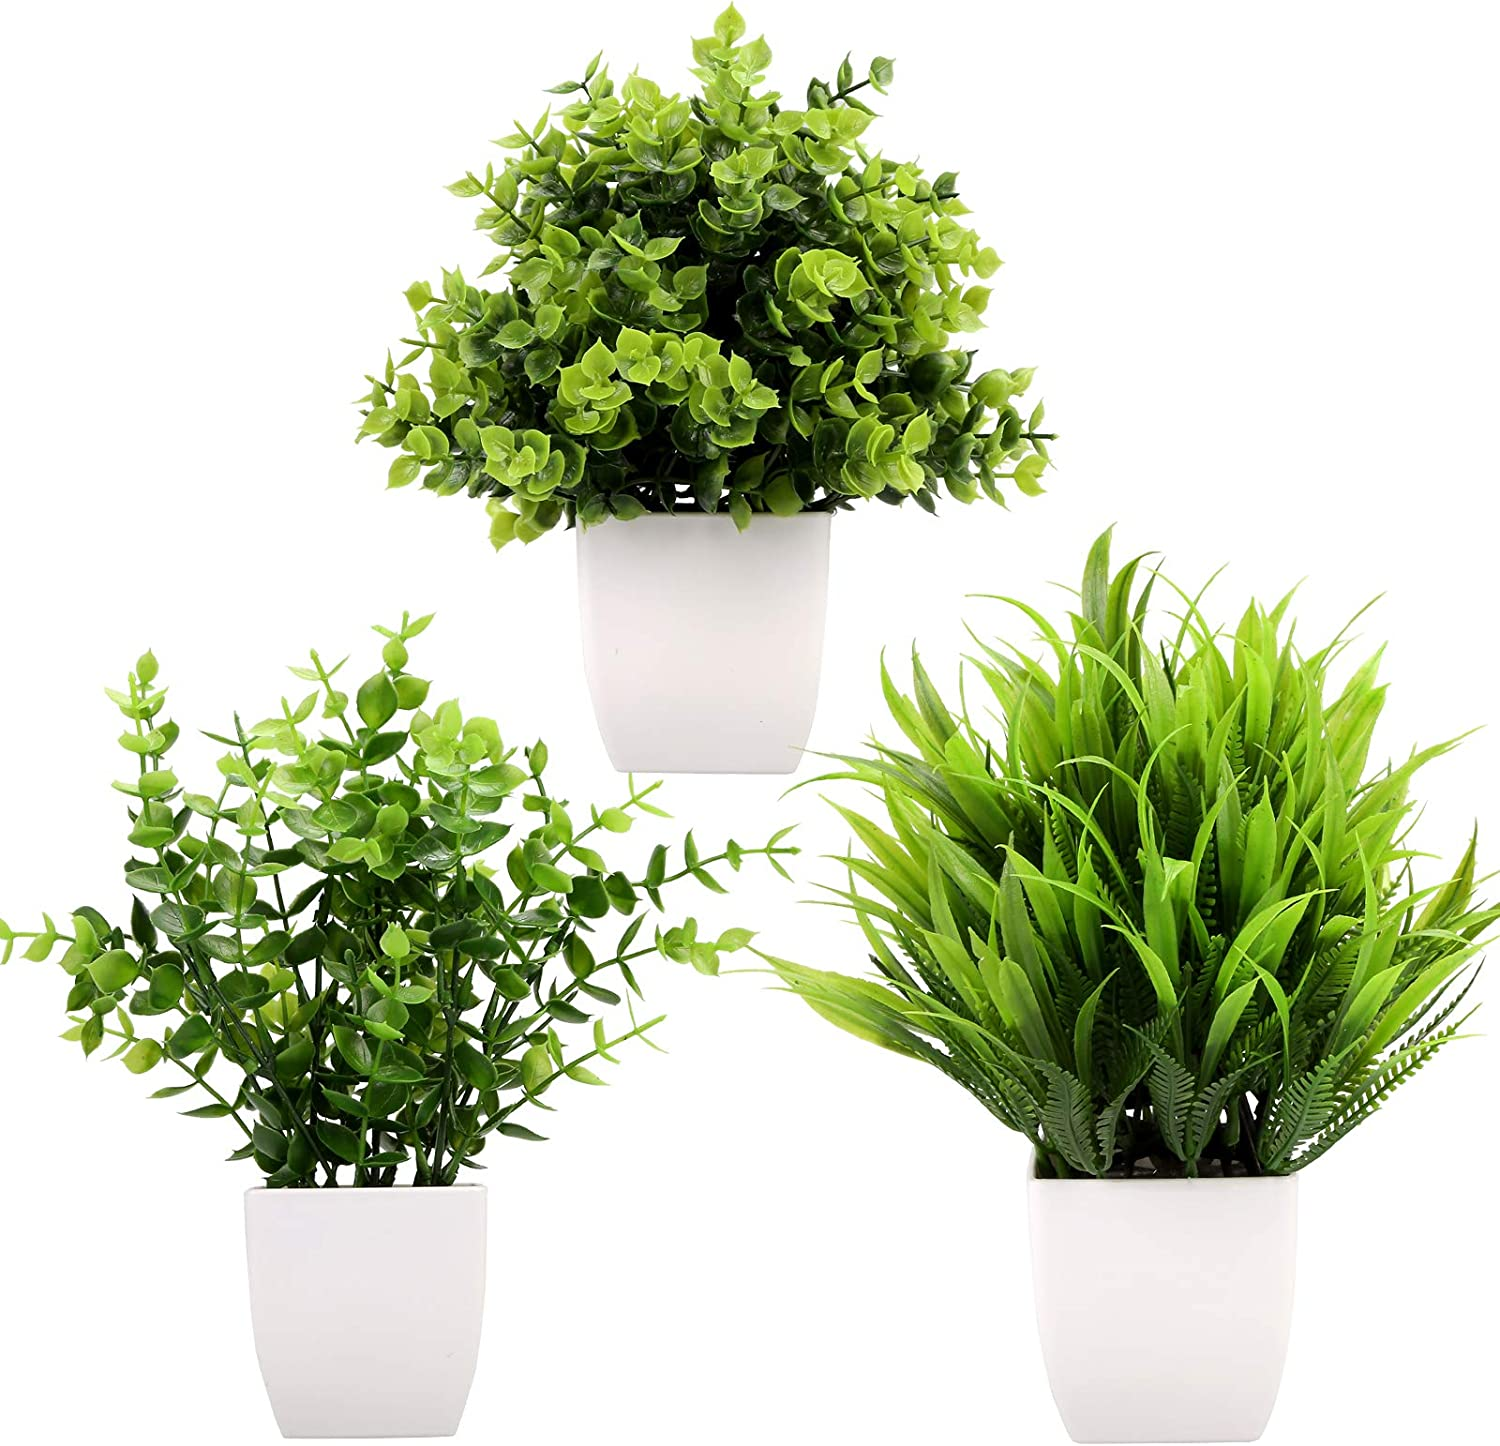 Greentime 3Pack Fake Plants in Pots,Artificial Plastic Eucalyptus Plants,Wheat Grass Potted Faux Plants Indoor for Office Desk Coffee Table Bathroom Bedroom Home Decorations